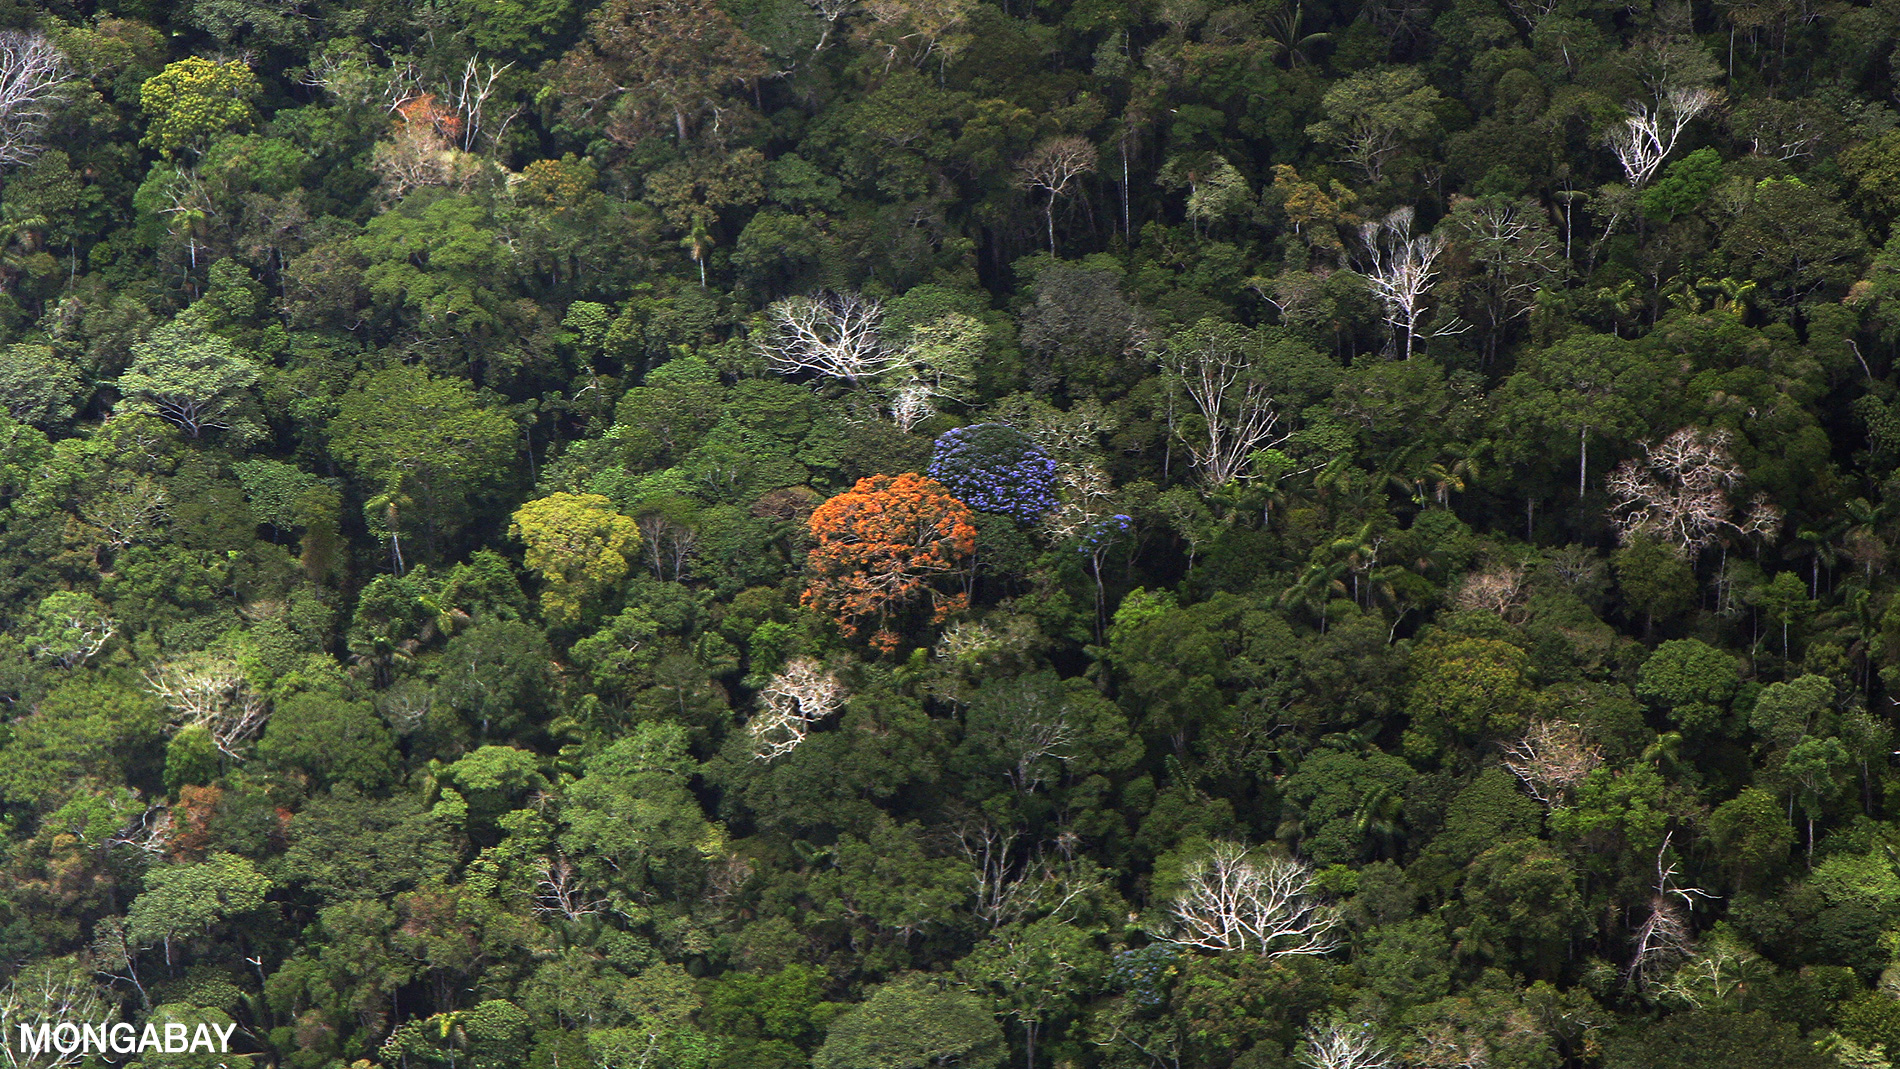 Rainforest comprises only 3 per cent of australia's total native forest, but provides habitat for 60 per cent of australia's plant species, 60 per cent of butterfly species, 40 per cent of bird species and 35 per cent of mammal species. Ecology Of The Amazon Rainforest